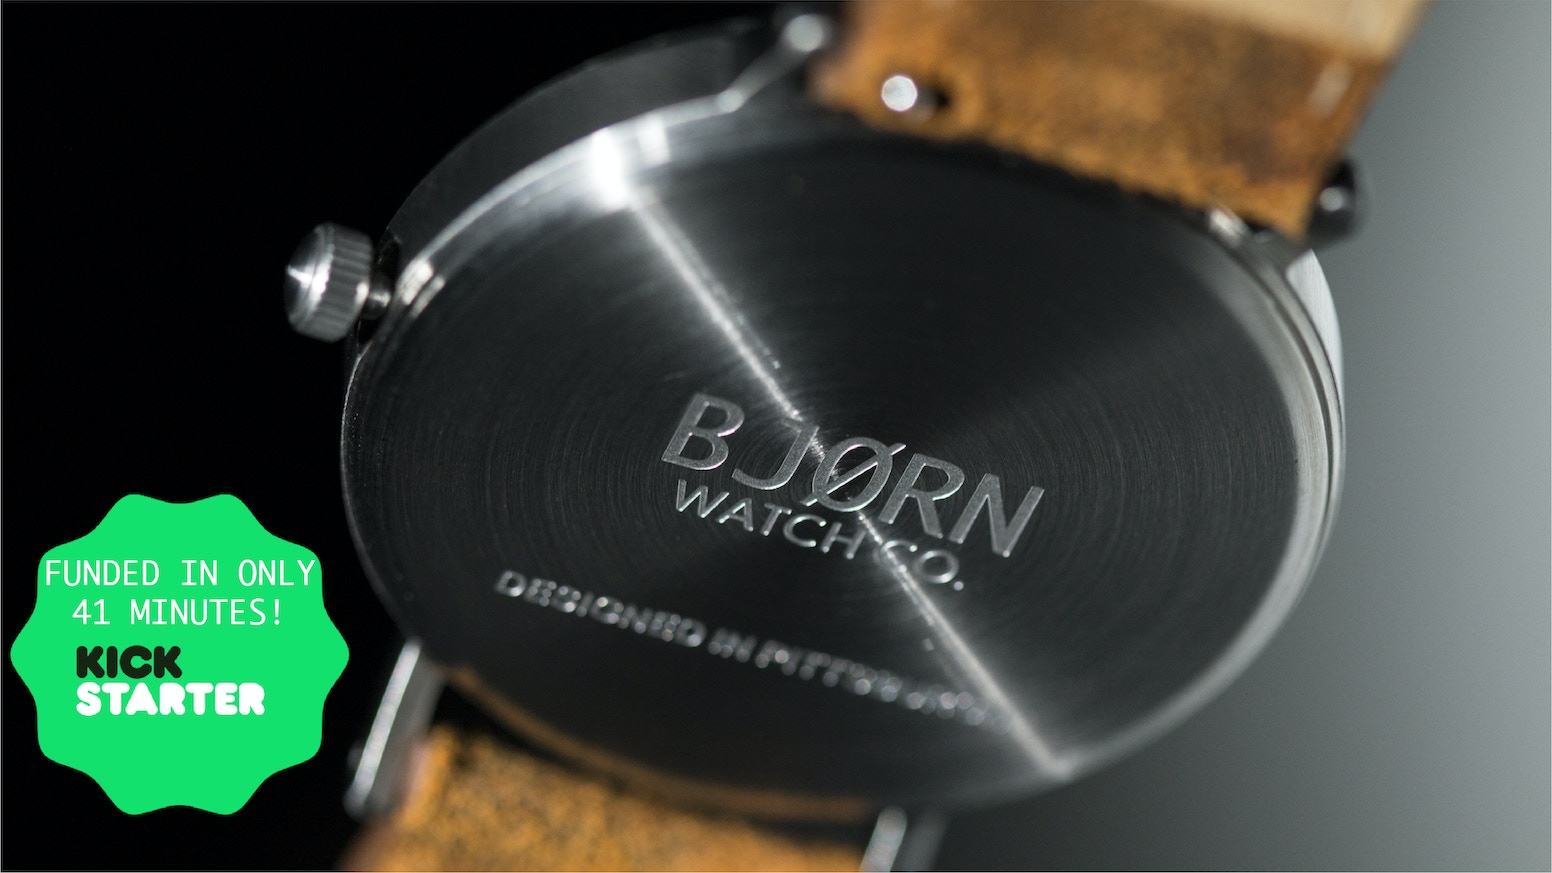 We challenge you to find a better watch at a lower price! If you do, we will match it.